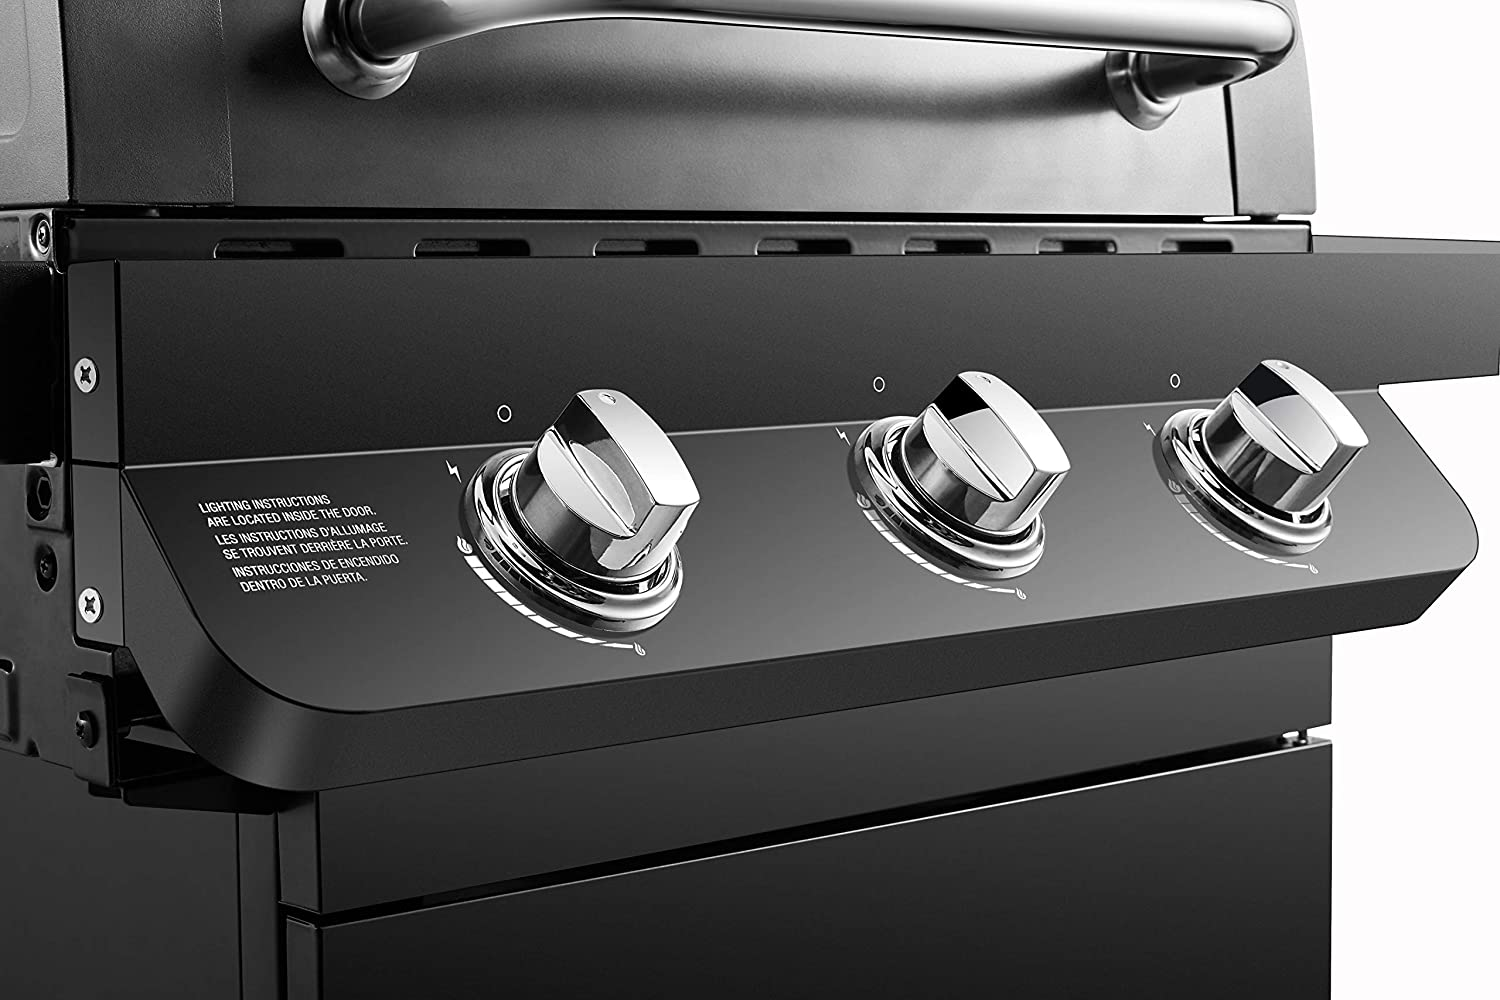 Ignition and control knobs on the Dyna-Glo Premier 3 Burner Propane Gas Grill - Black DGP397CNP-D